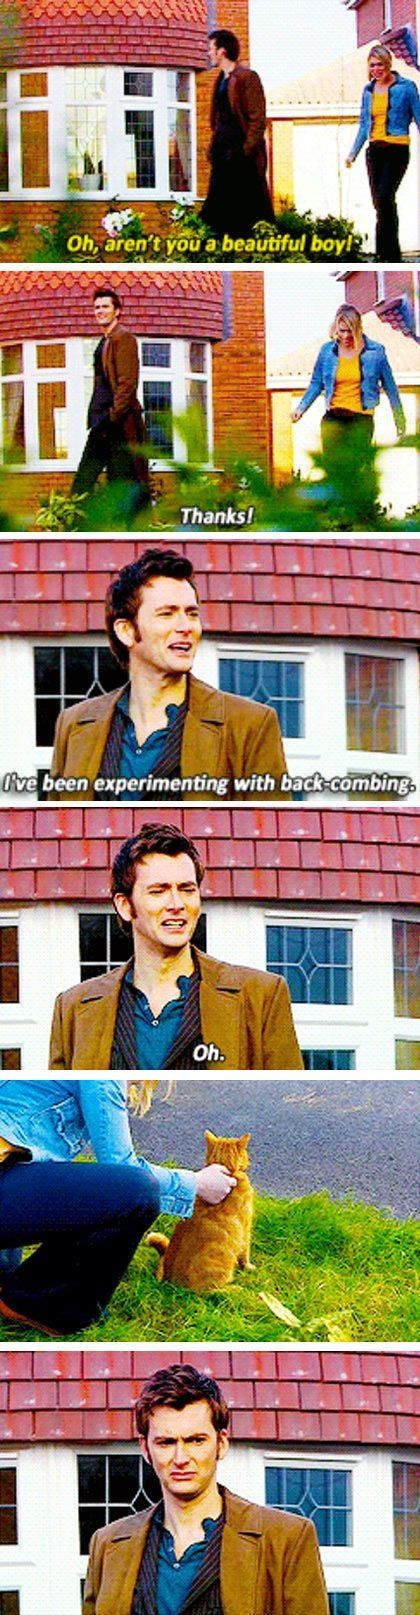 It's funny to see the Doctor getting jealous over a cat!